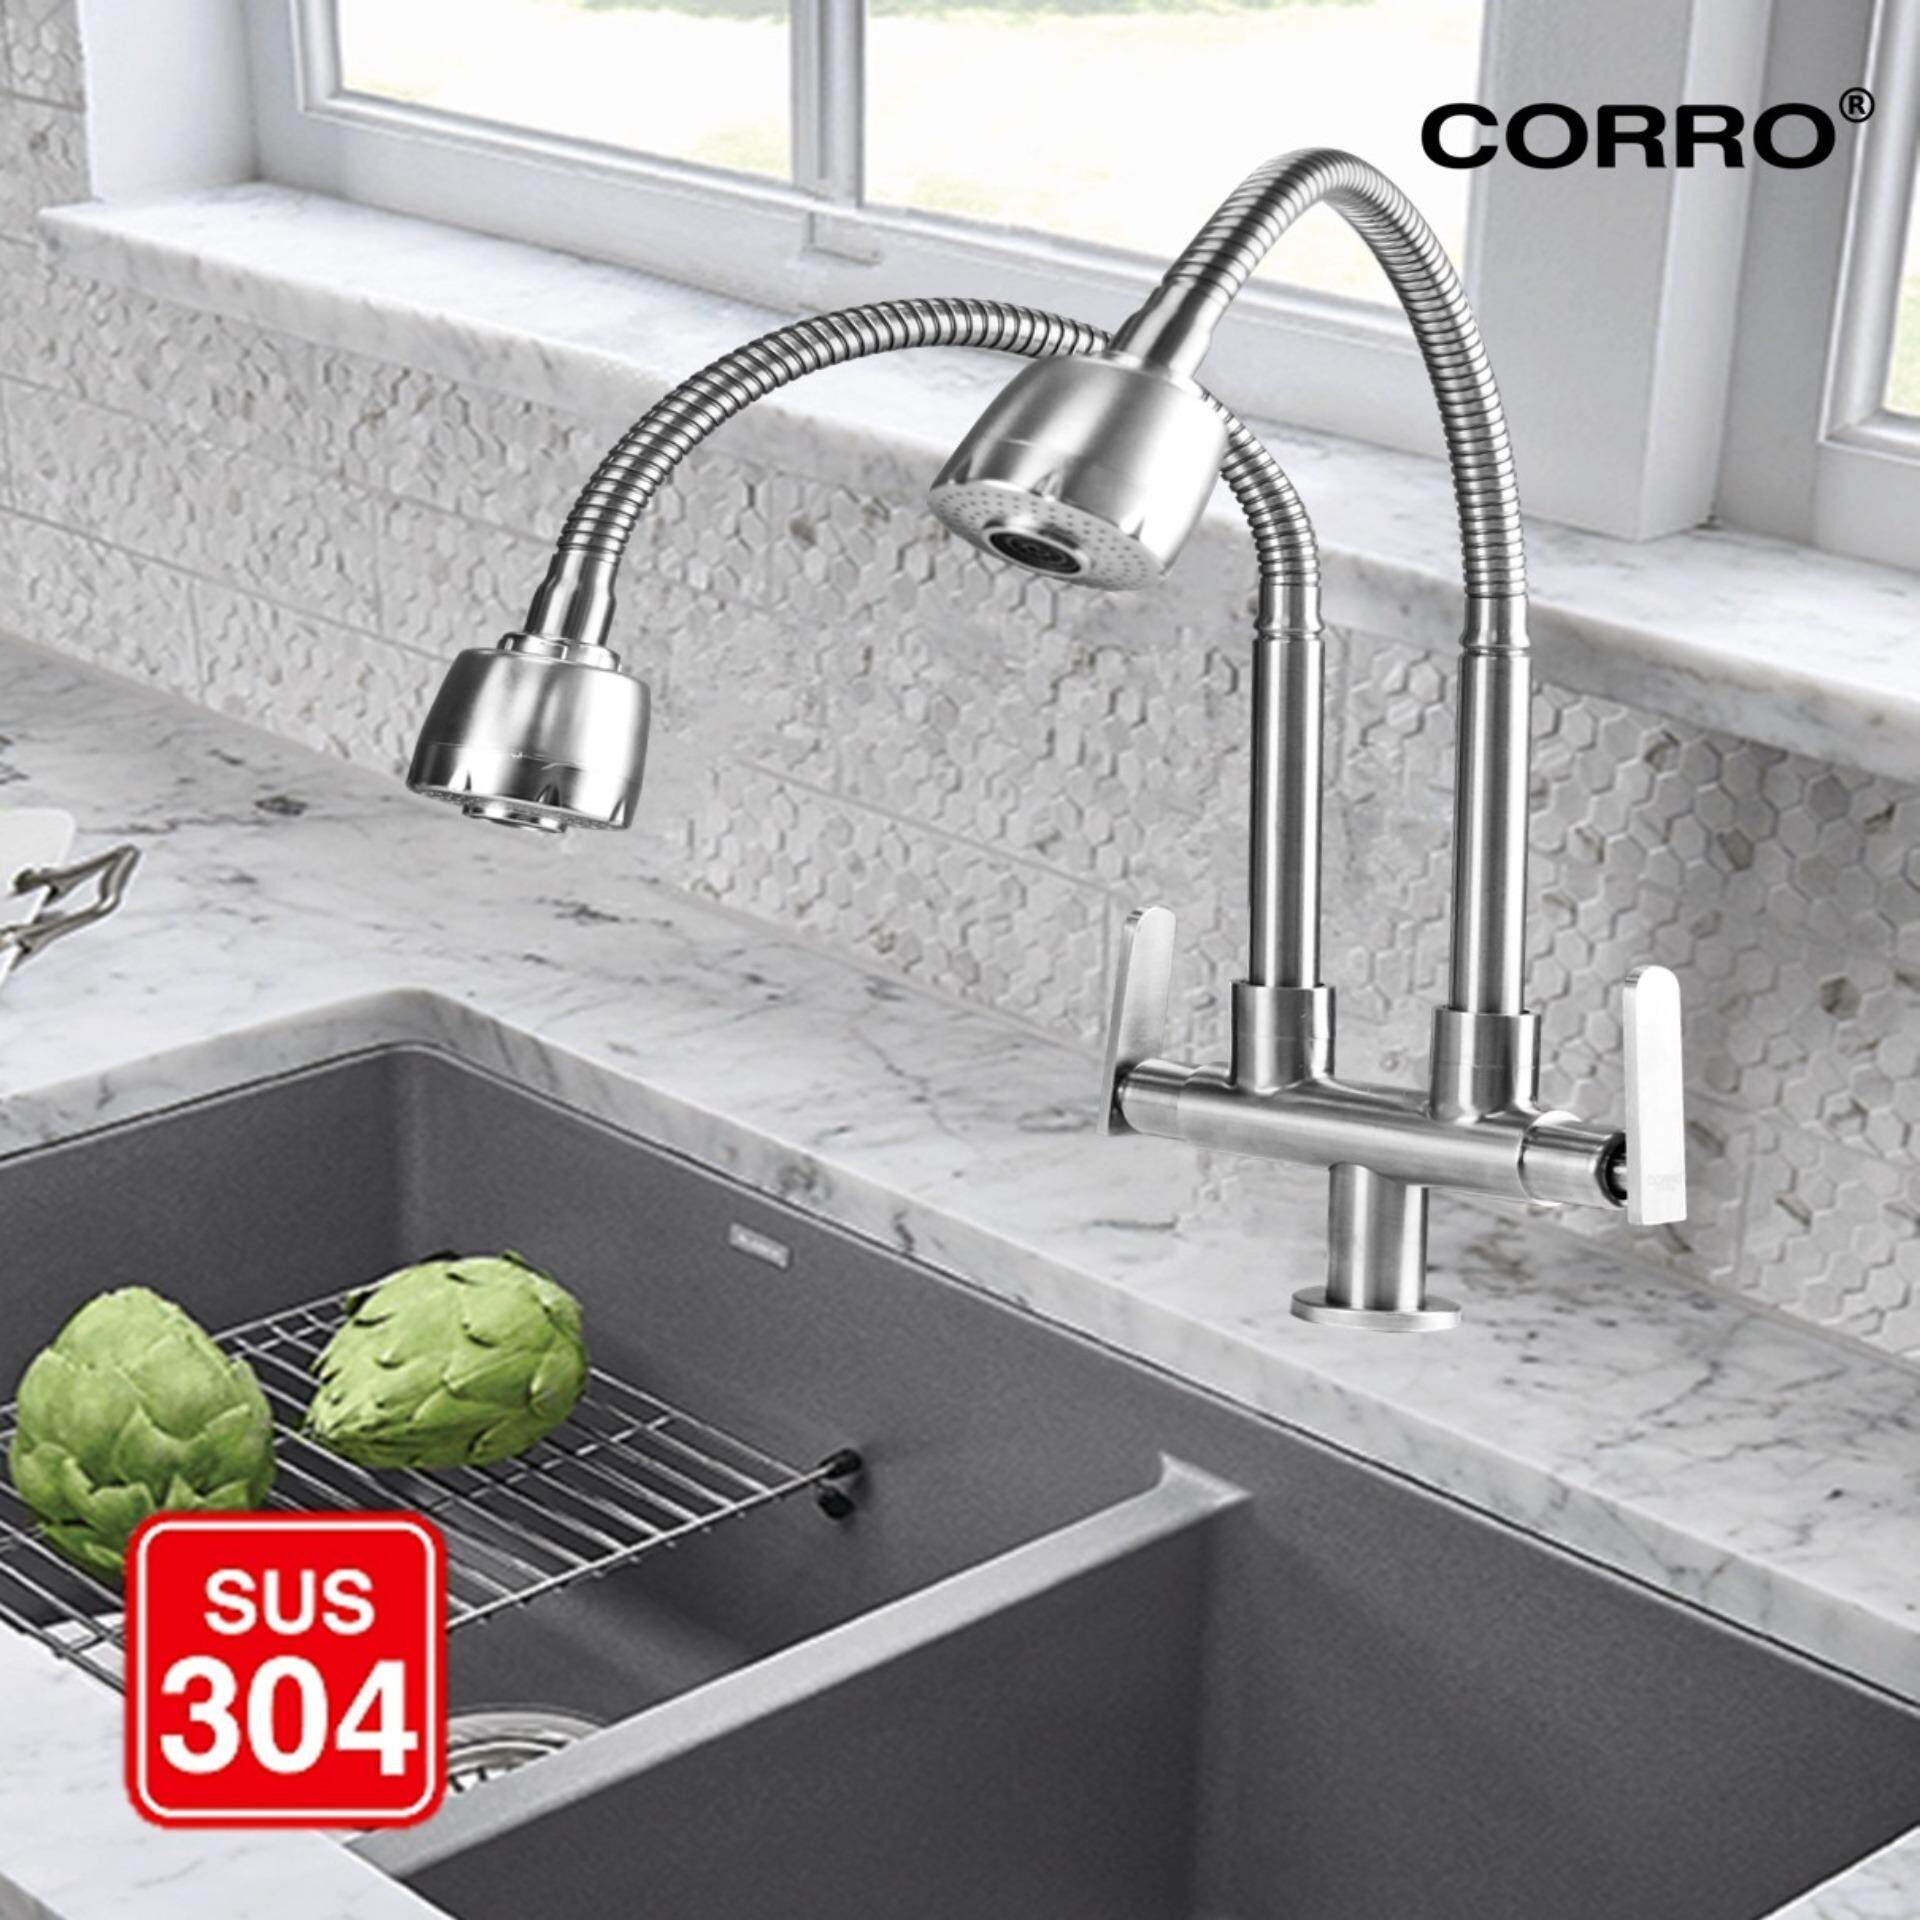 CORRO SUS304 Stainless Steel Twin Hose Flexible Swivel Kitchen Sink Pillar Tap